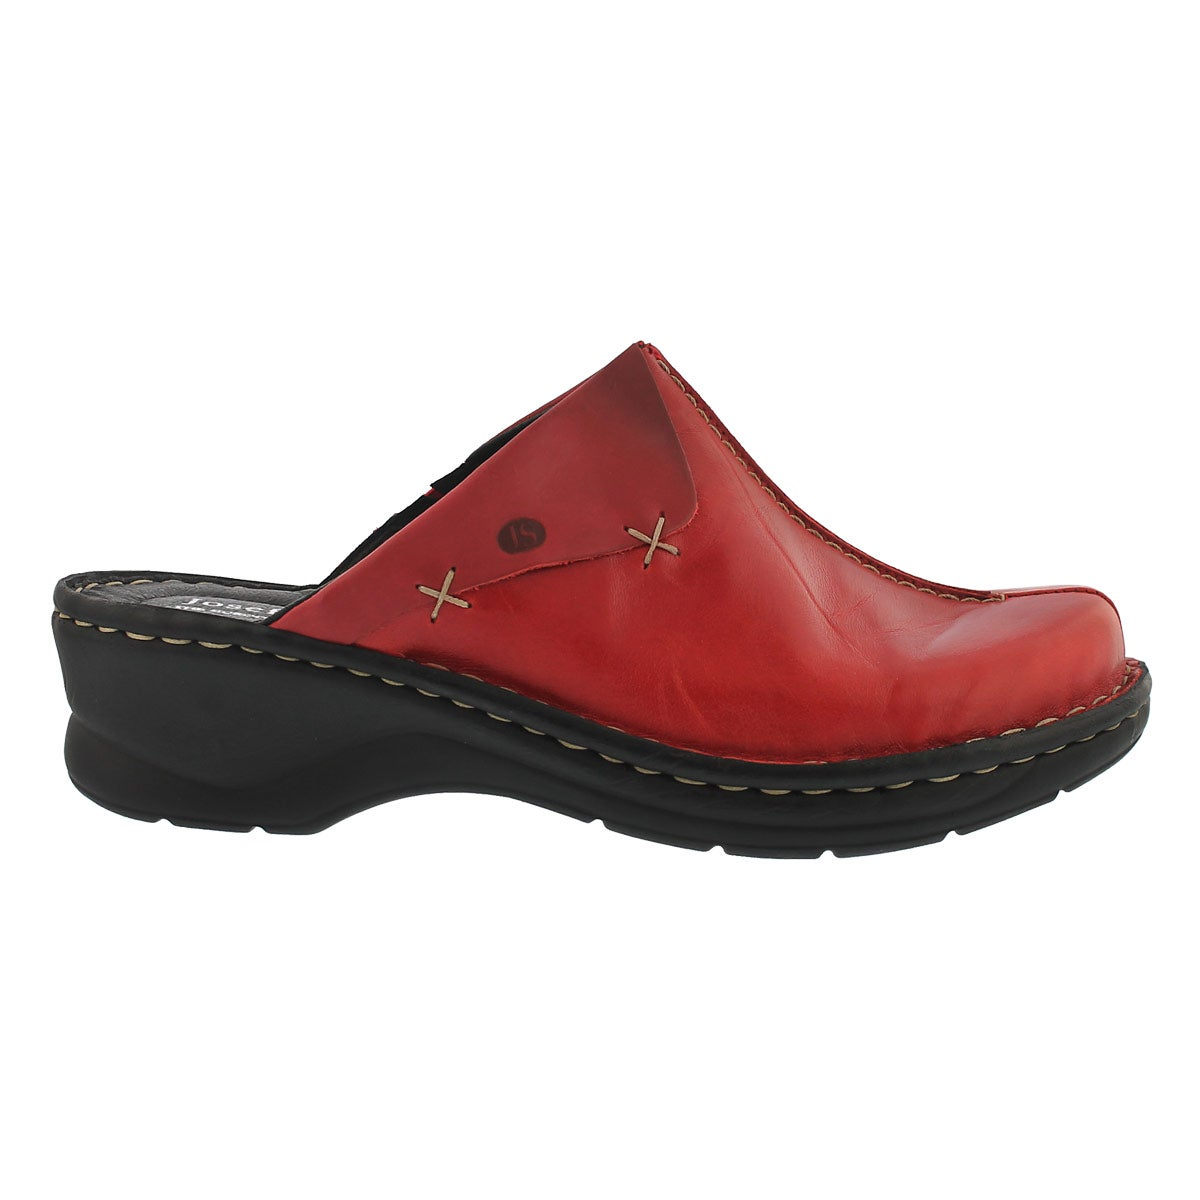 Lds Catalonia 48 hibiscus low wedge clog